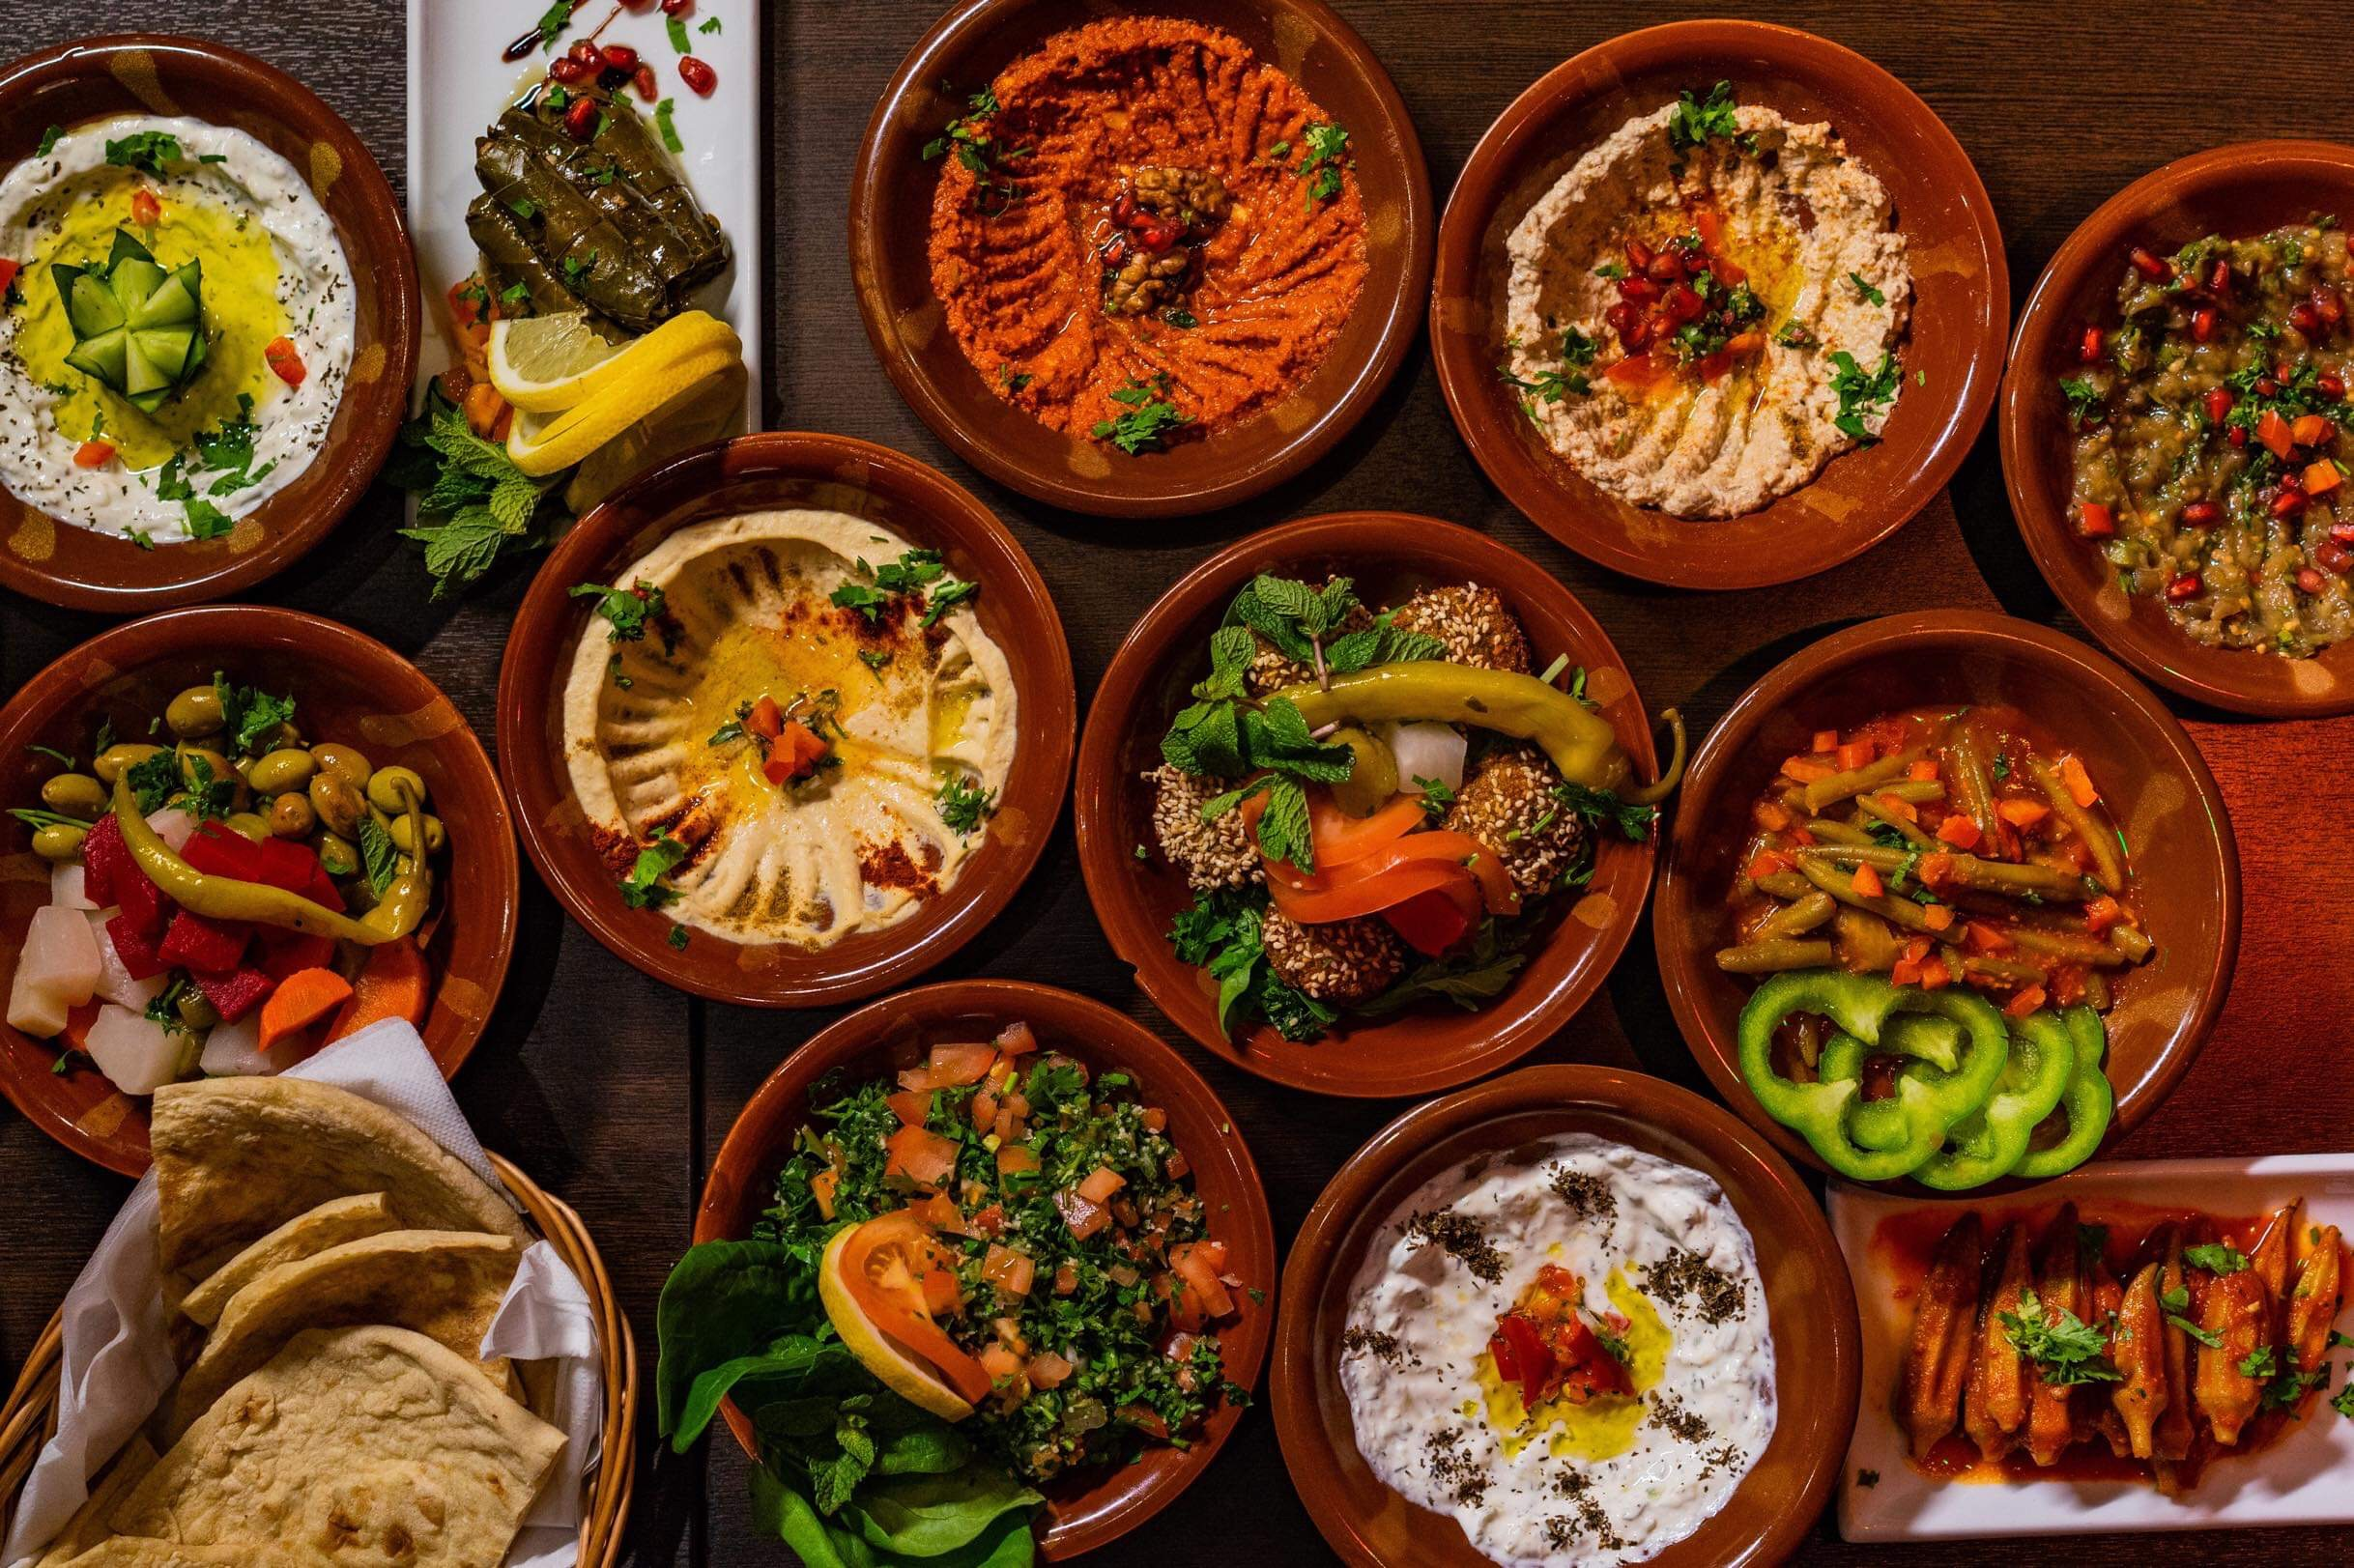 8-retters meze (tapas) & et glass musserende 320 kr per person